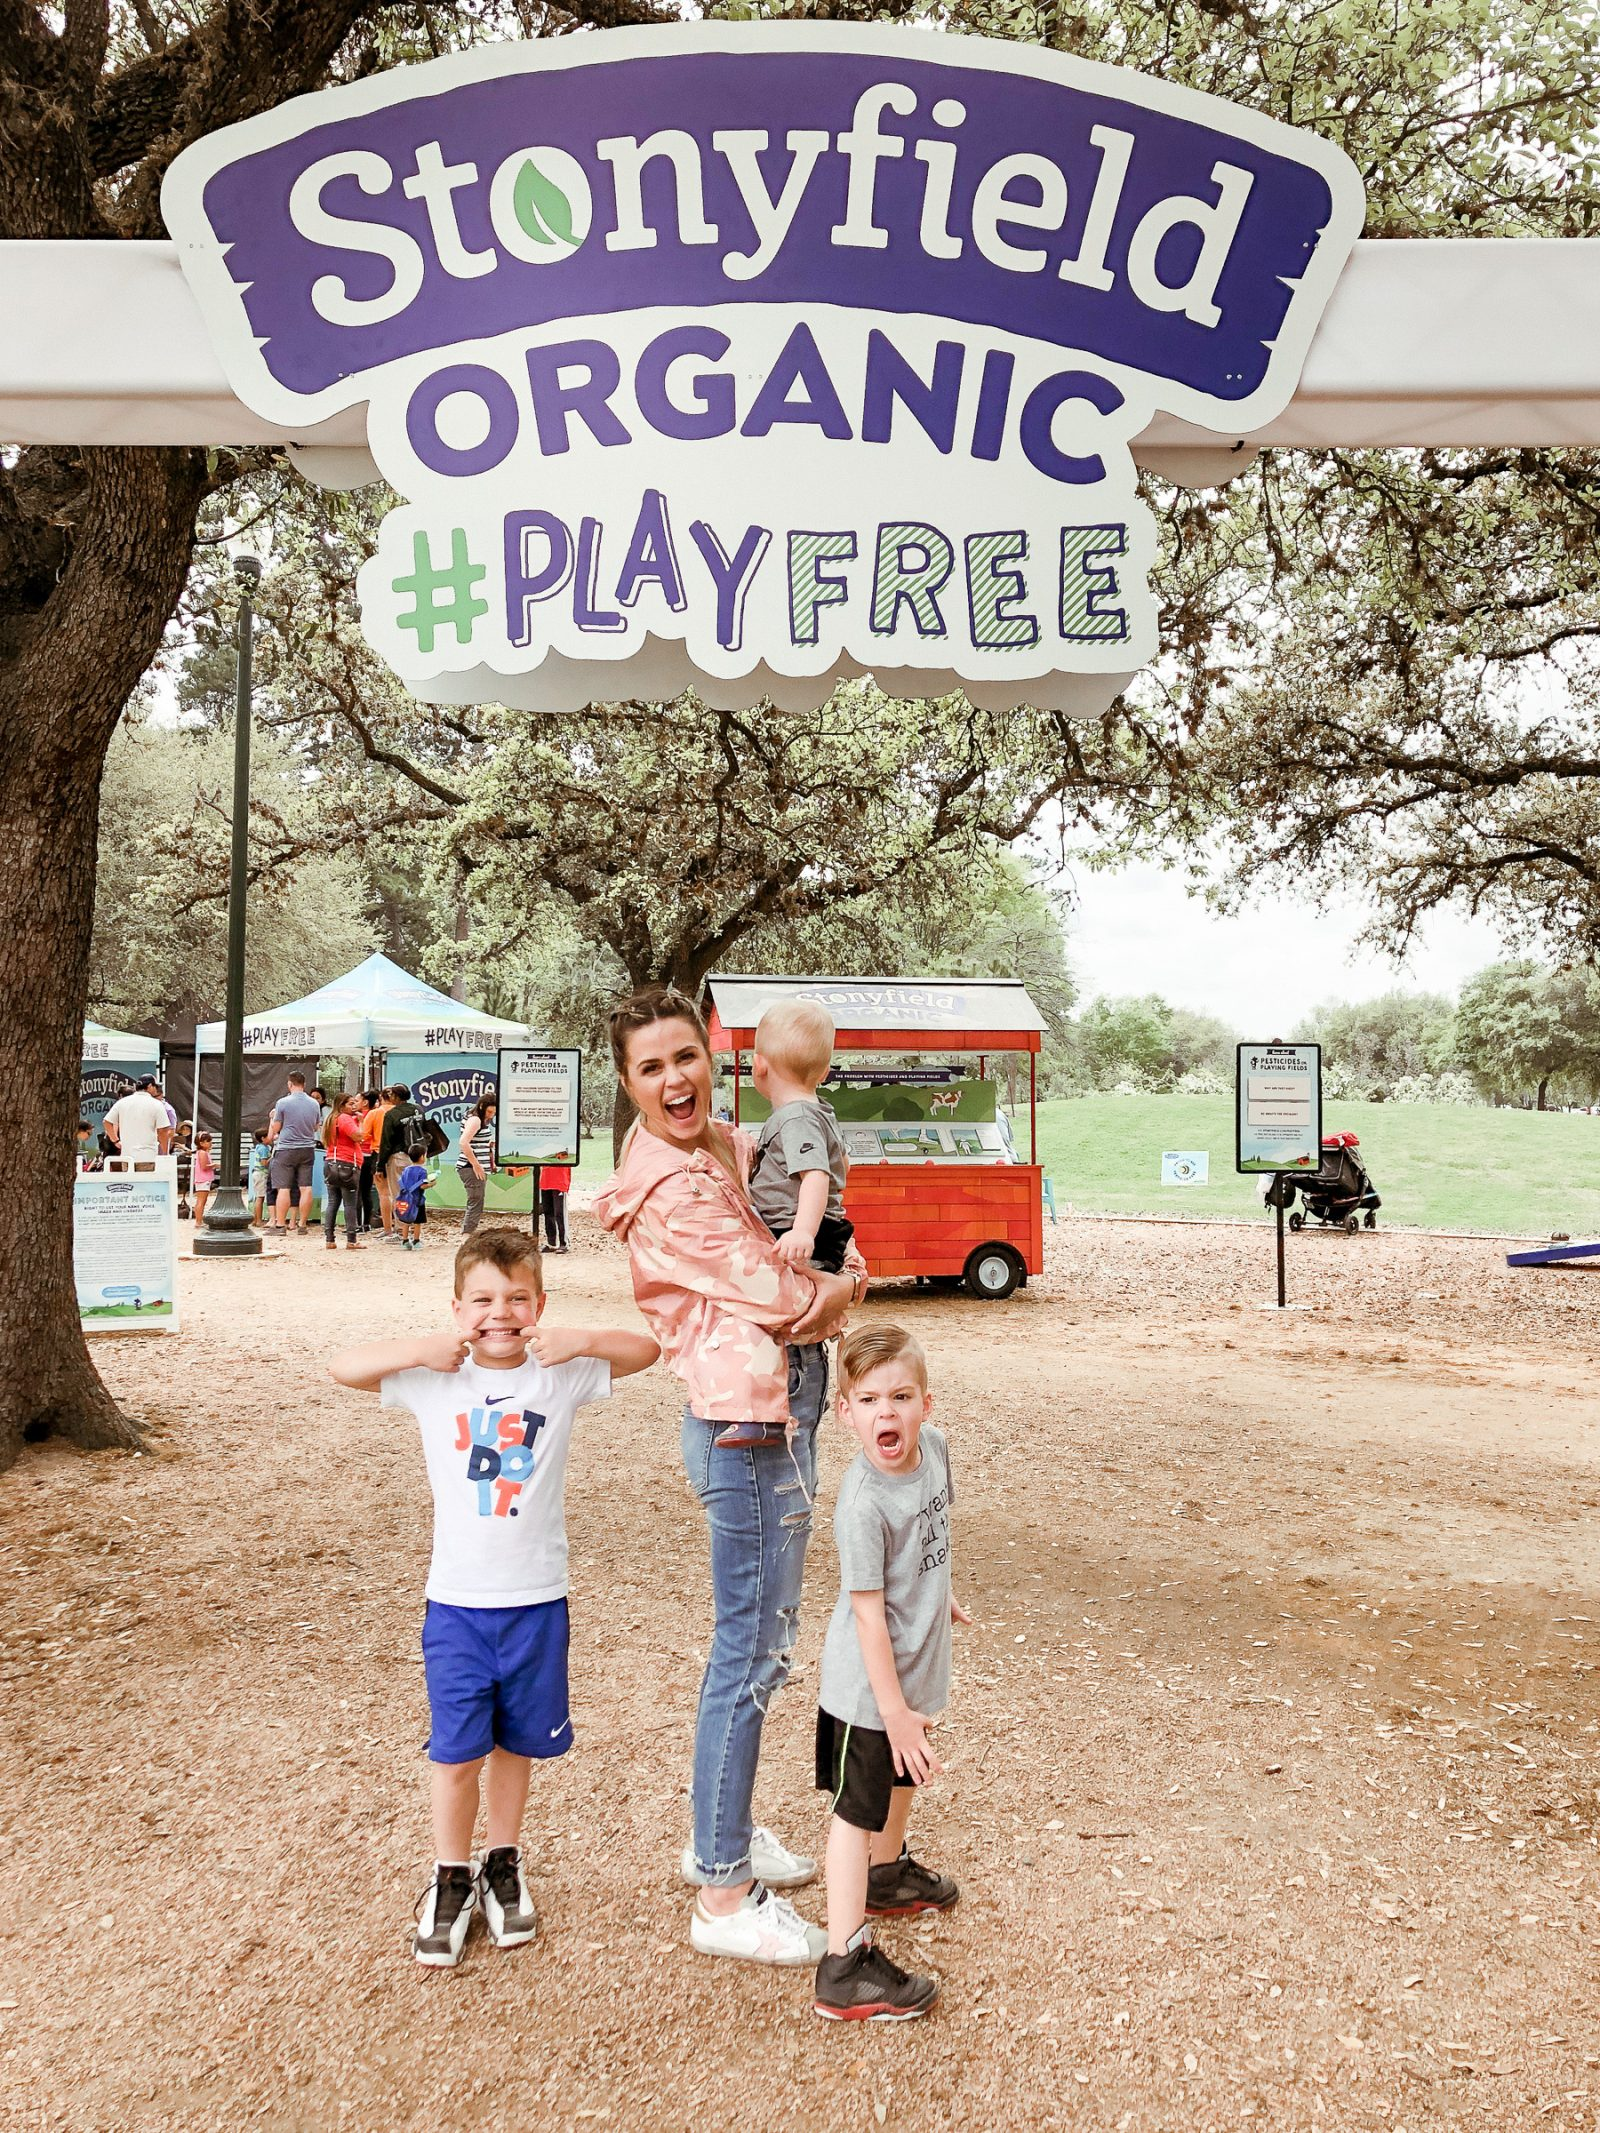 Houston lifestyle blogger Uptown with Elly Brown teams up with Stonyfield to share about their initiative and how they are making public parks now organic!